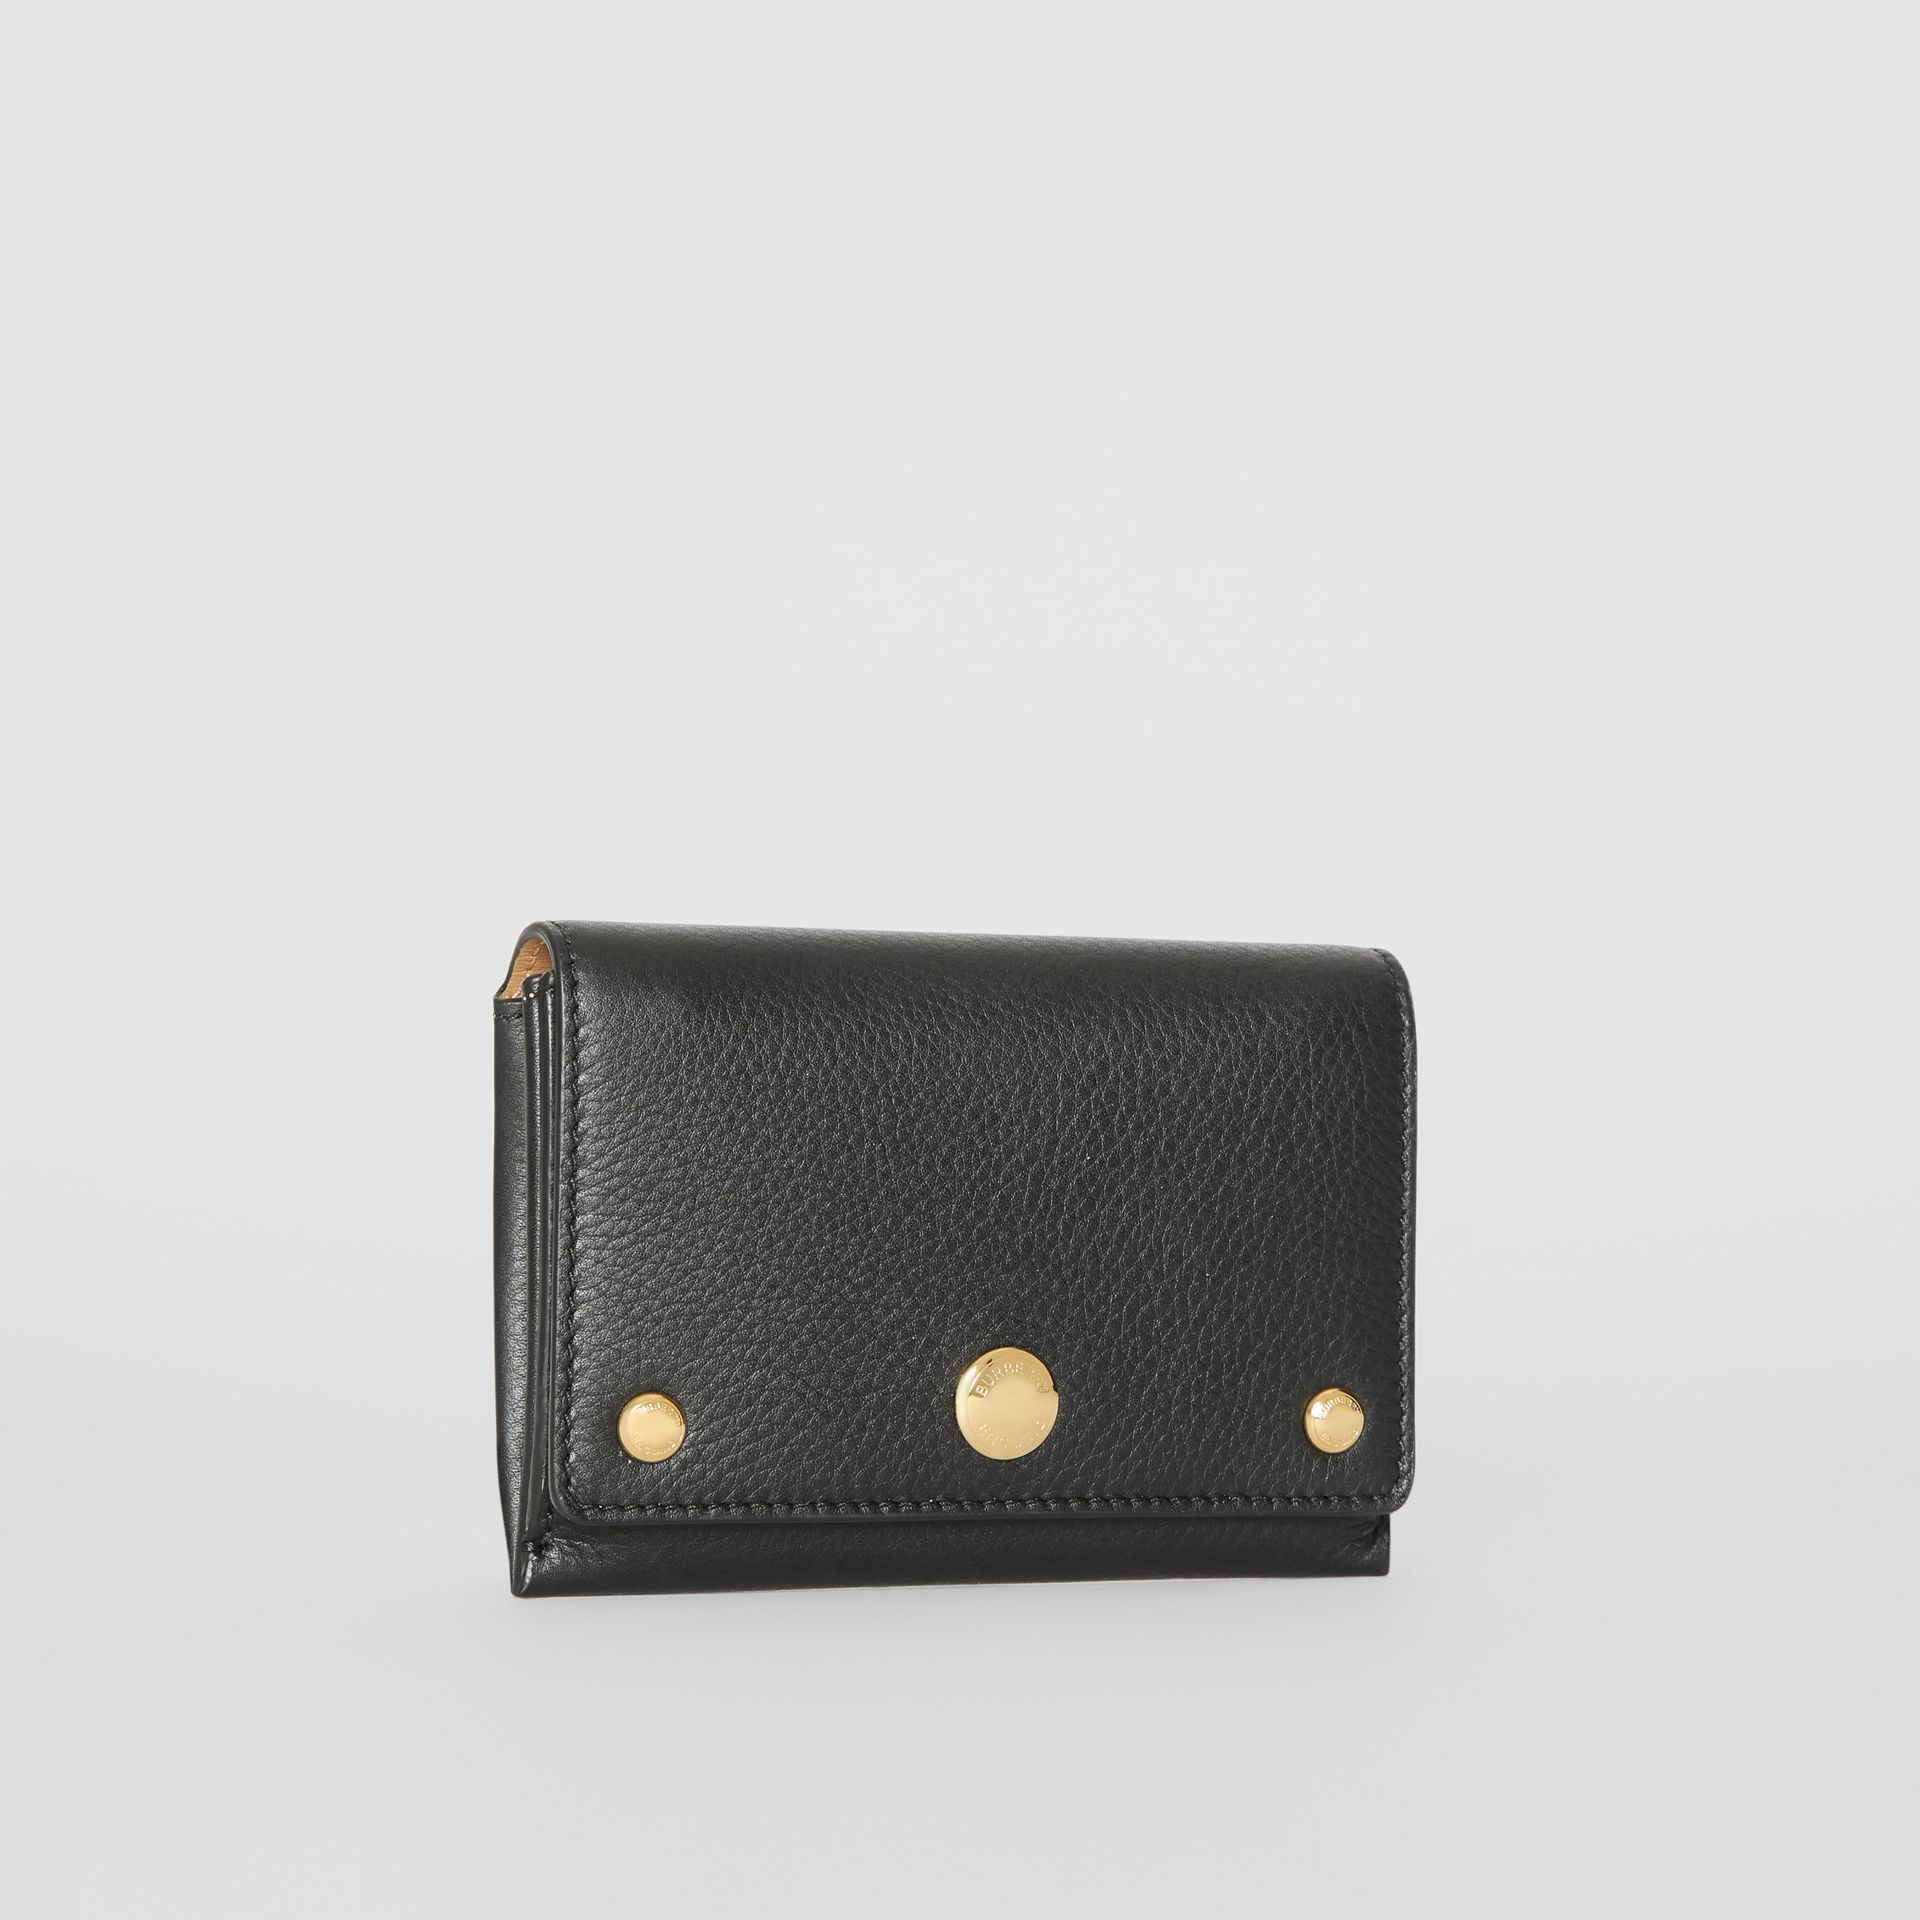 Triple Stud Leather Folding Wallet in Black - Women | Burberry United States - gallery image 4